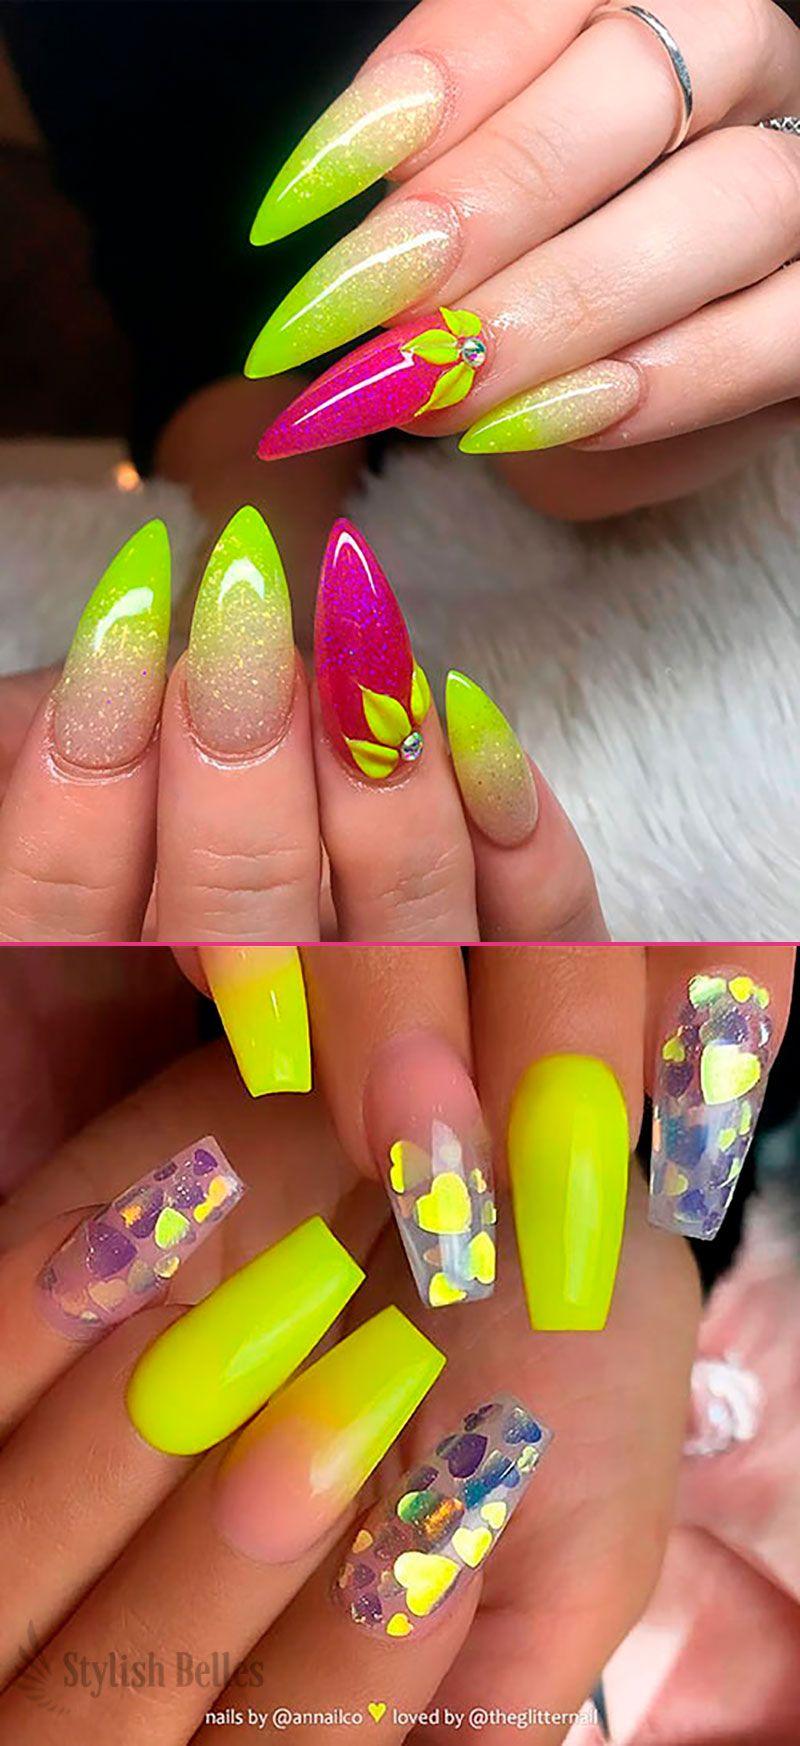 Best Nails For Summer 2019 Shiny Nails Designs Neon Nails Neon